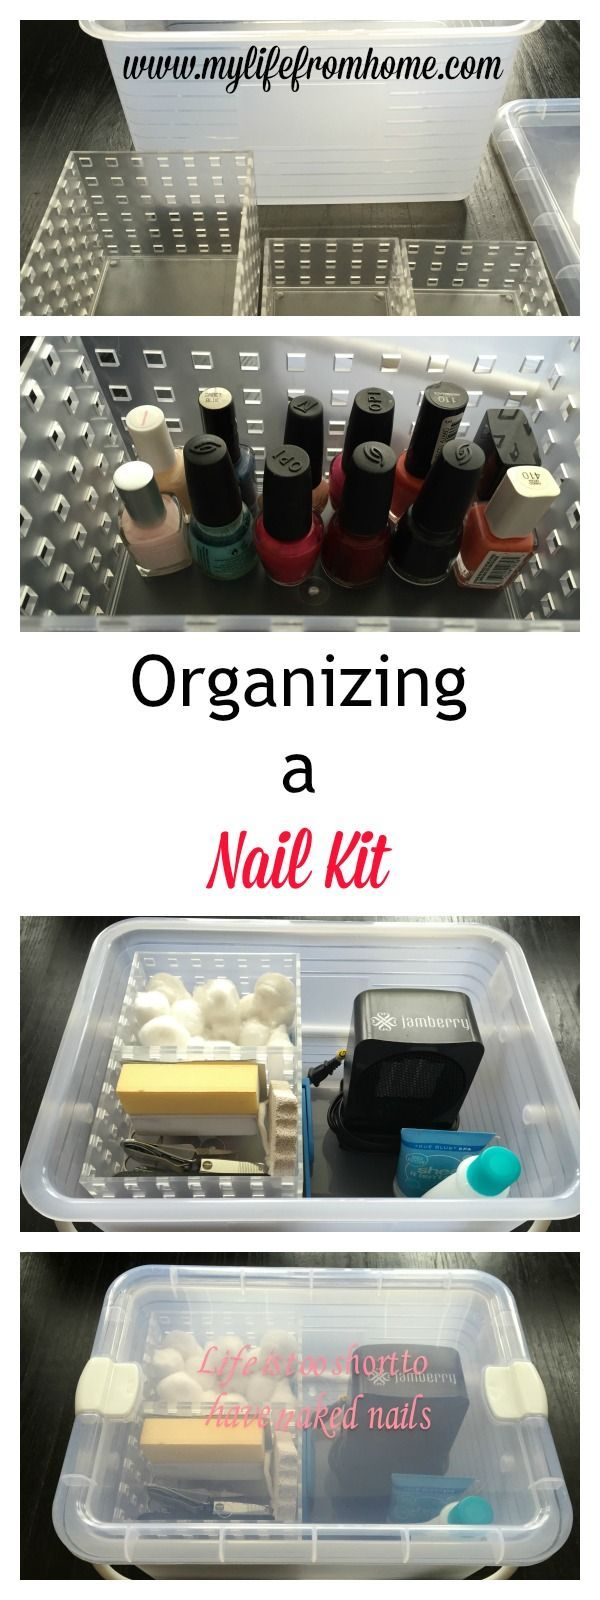 Tired of a jumble of nail polish under your cabinet? Here is step by step instructions to put together the ultimate nail care kit! A large caddy with a handle to carry anywhere!   My Life From Home   http://www.mylifefromhome.com   bathroom storage   small bath storage   nail polish kit   manicure kit   DIY nail kit   organizing nail polish